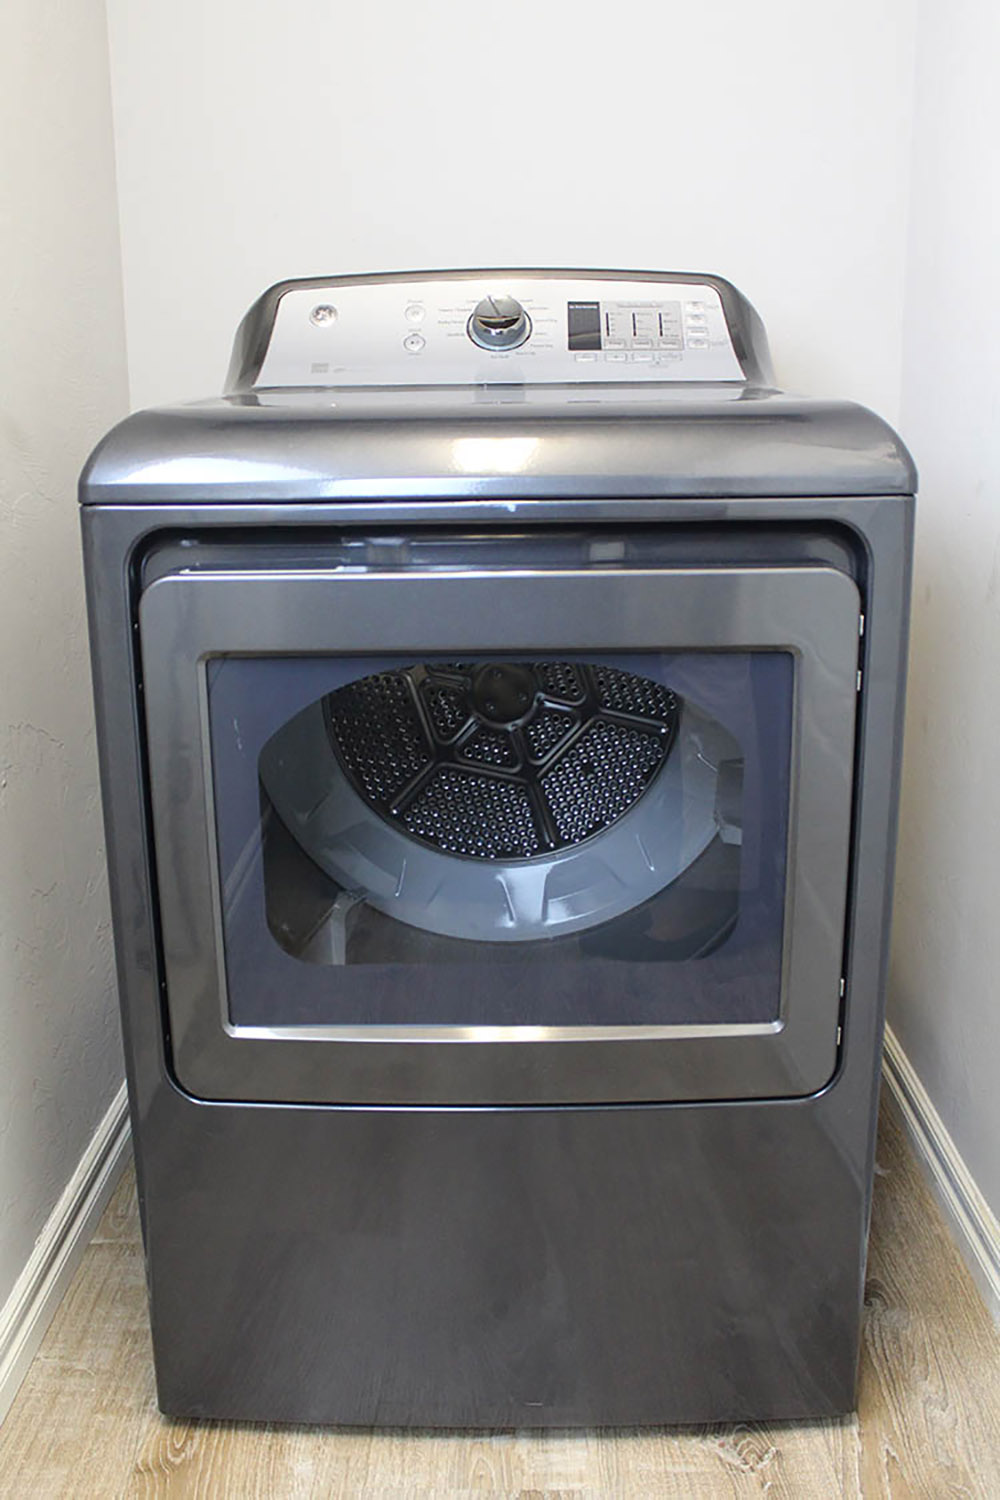 A gray GE dryer sits in an empty laundry room with blank walls.